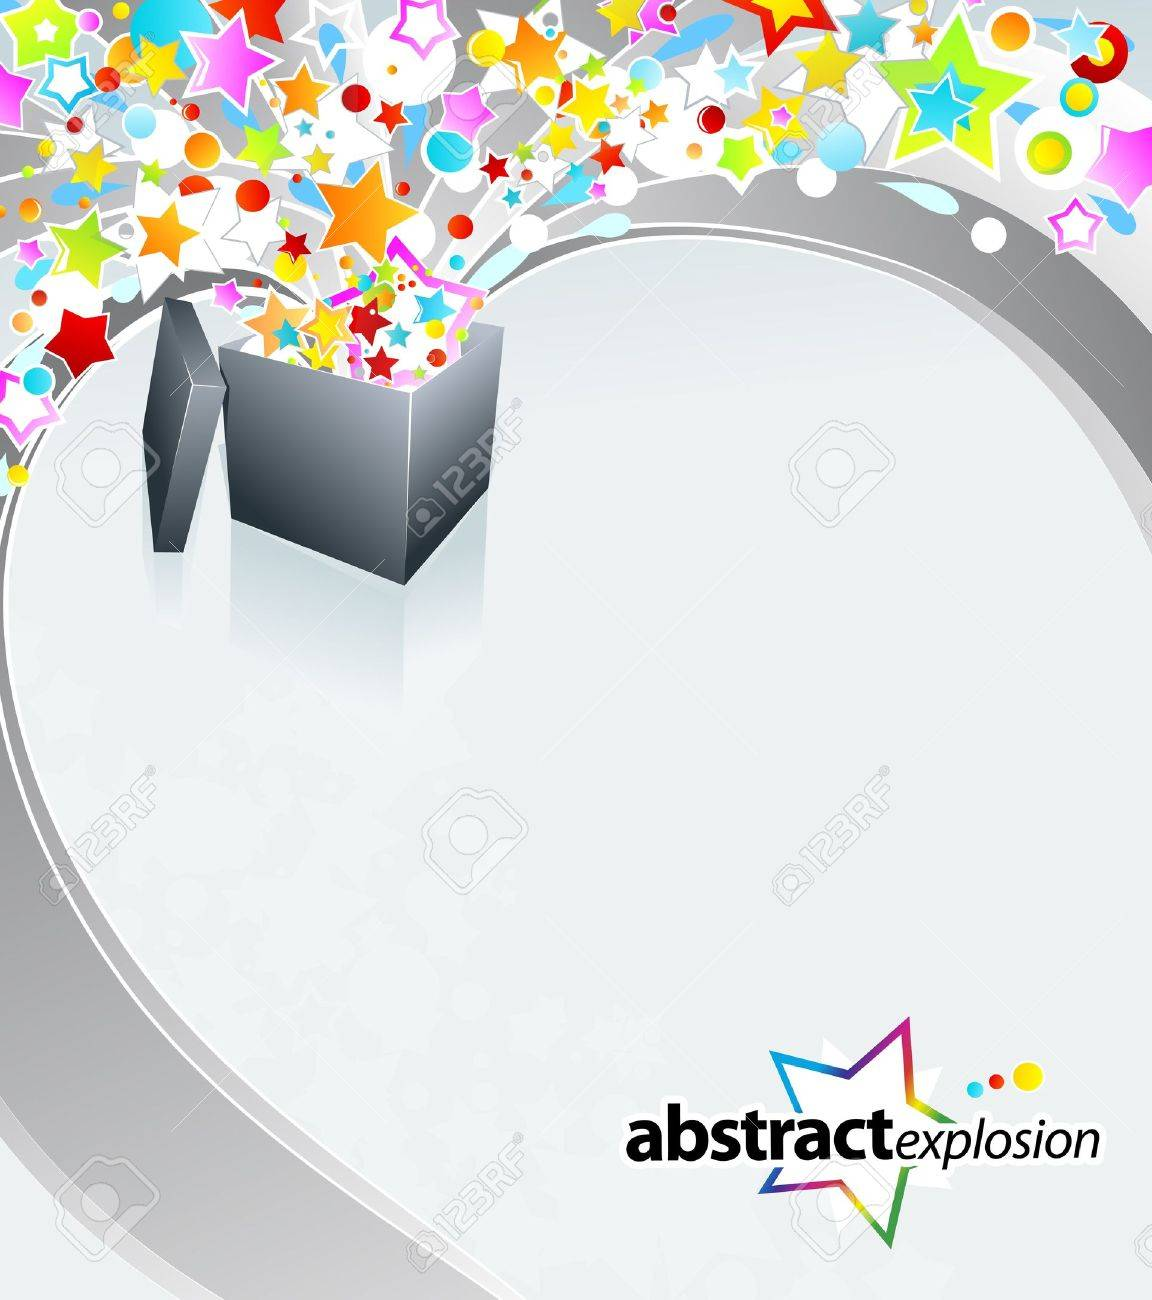 illustration of a surprise gift box exploding into a flow of rainbow stars and bubbles. - 6953266